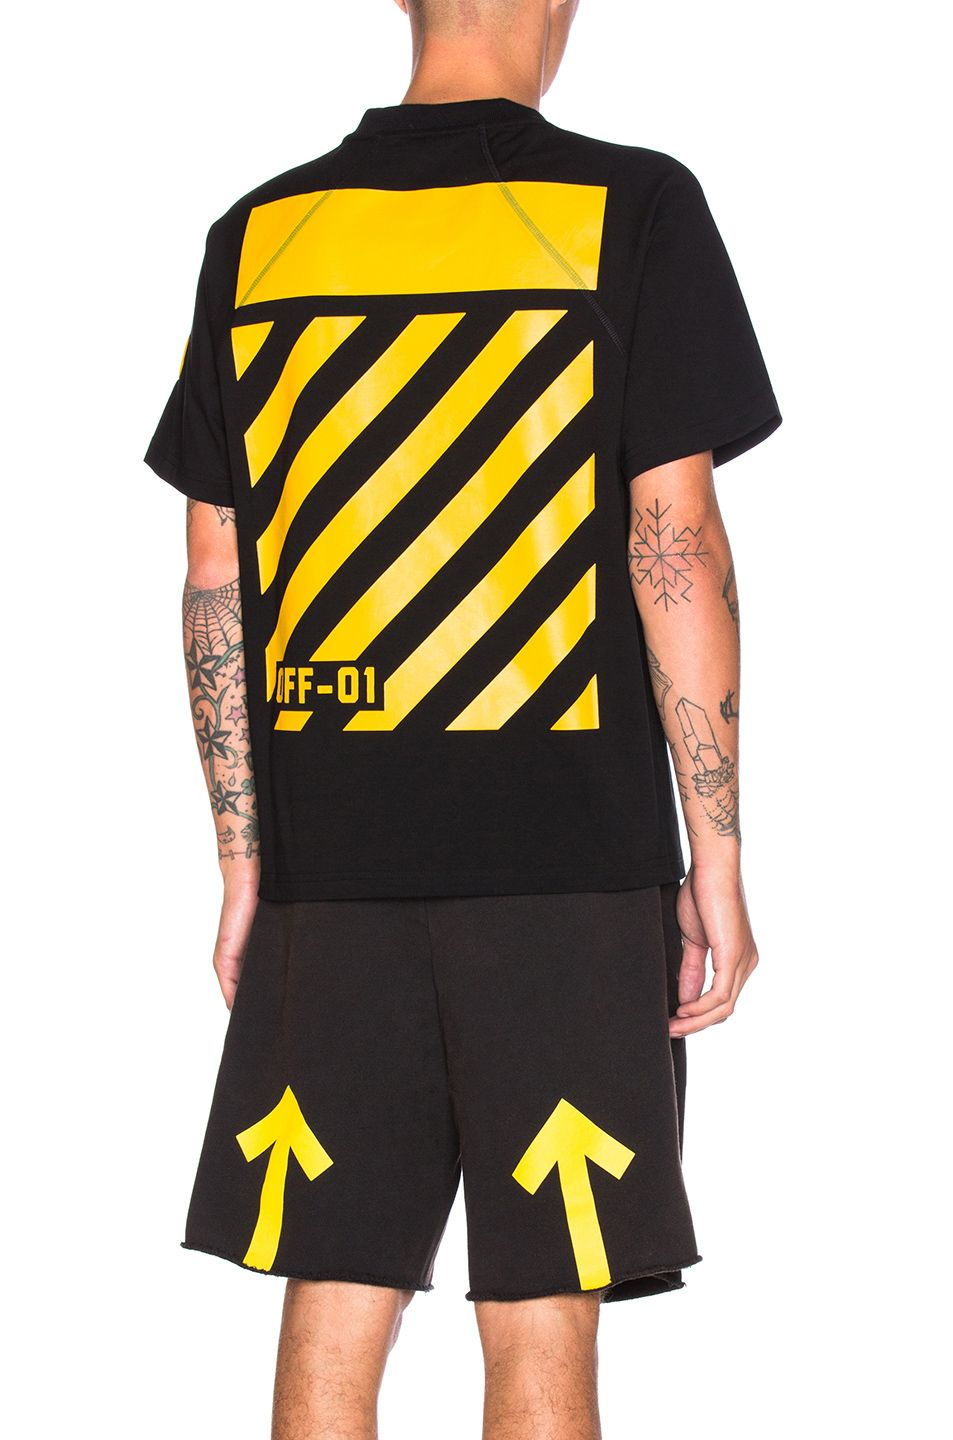 79094c505 Moncler x Off White Maglia Tee in Black | details in 2019 | Off ...